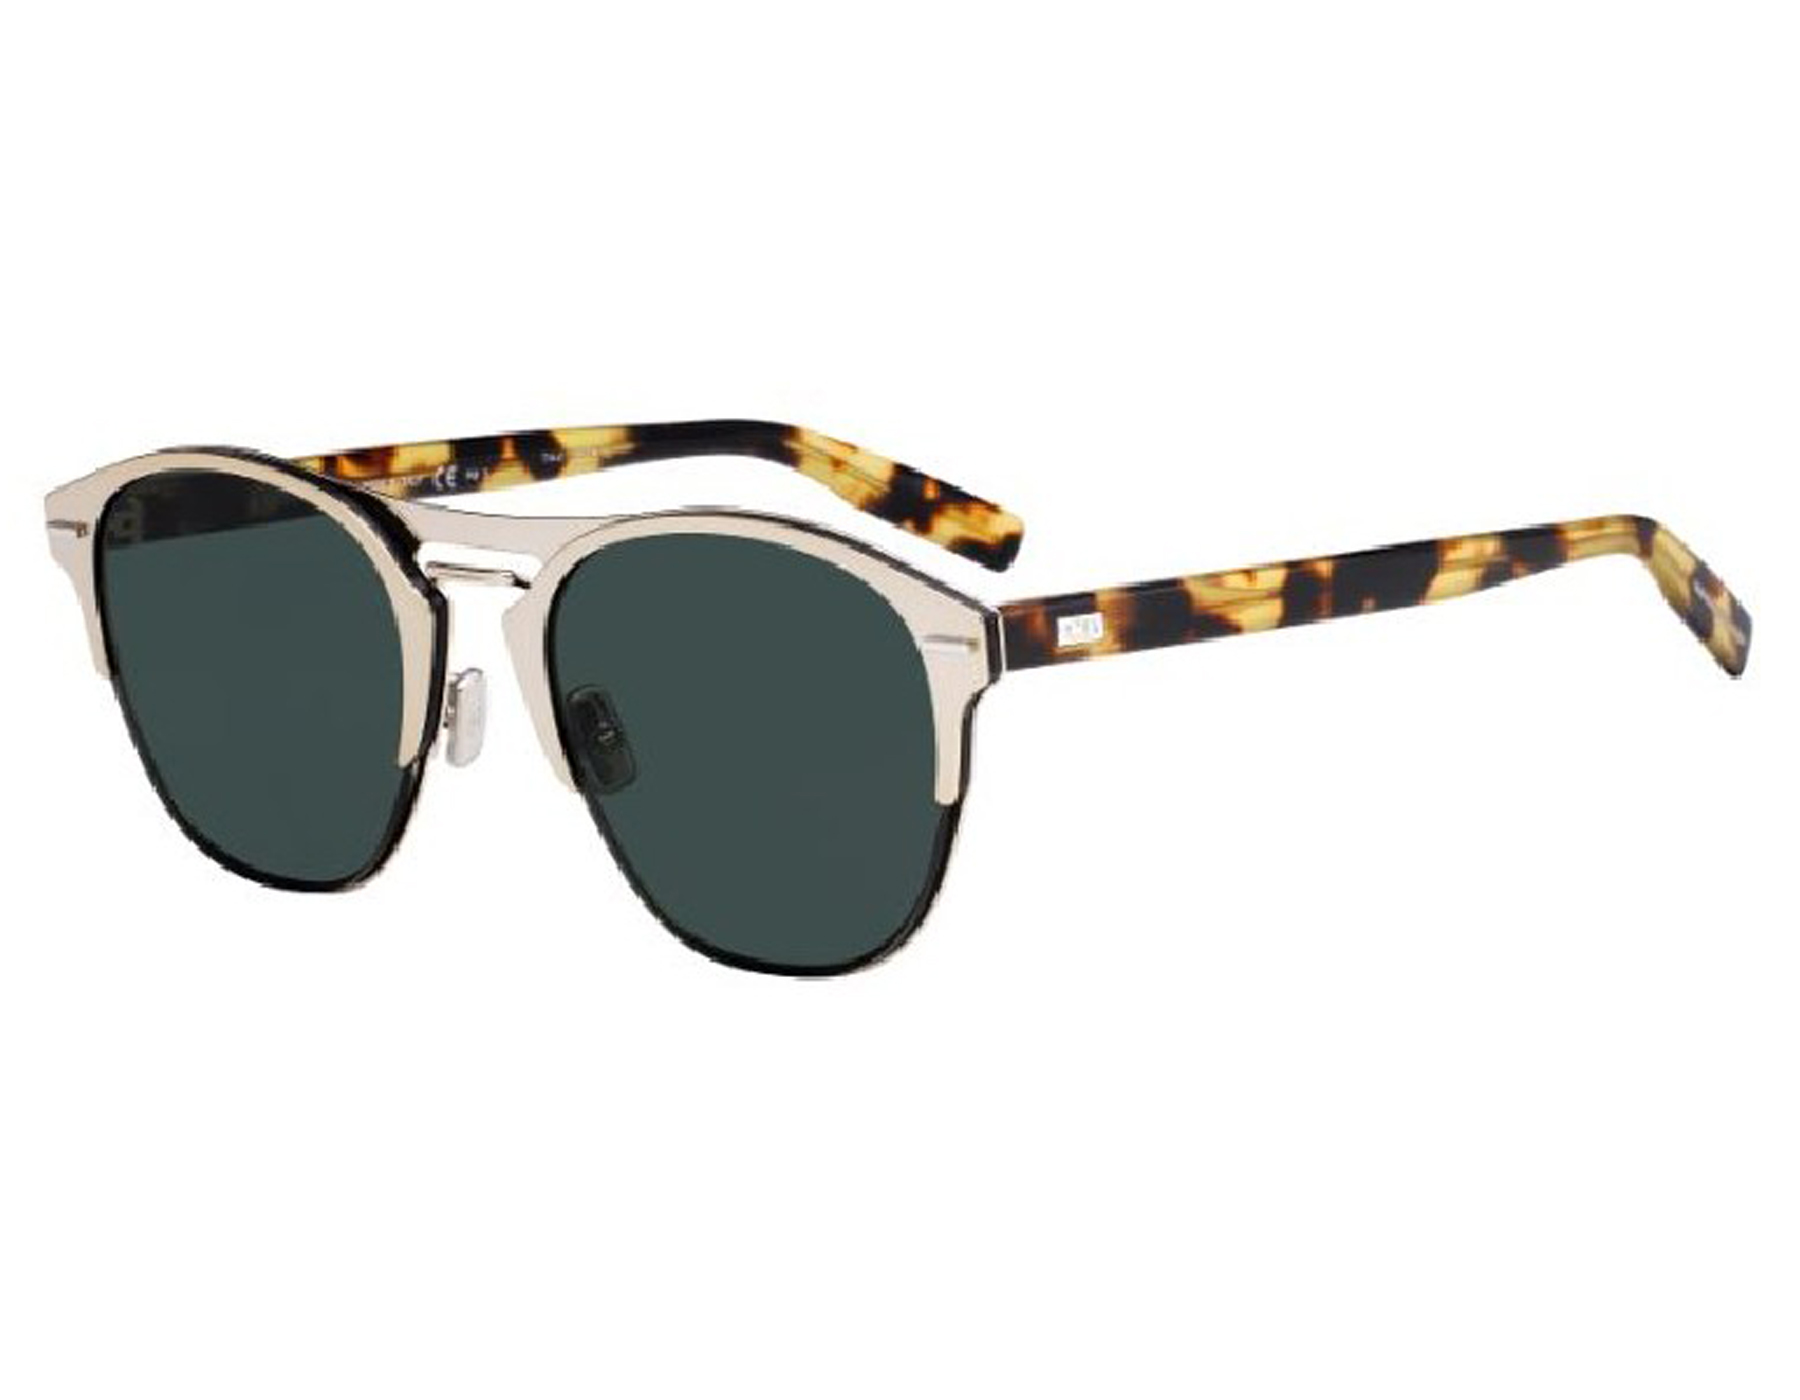 fc4a512ca2d6 Details about NEW Christian Dior Chrono 3YG O7 Light Gold   Green SF  Sunglasses